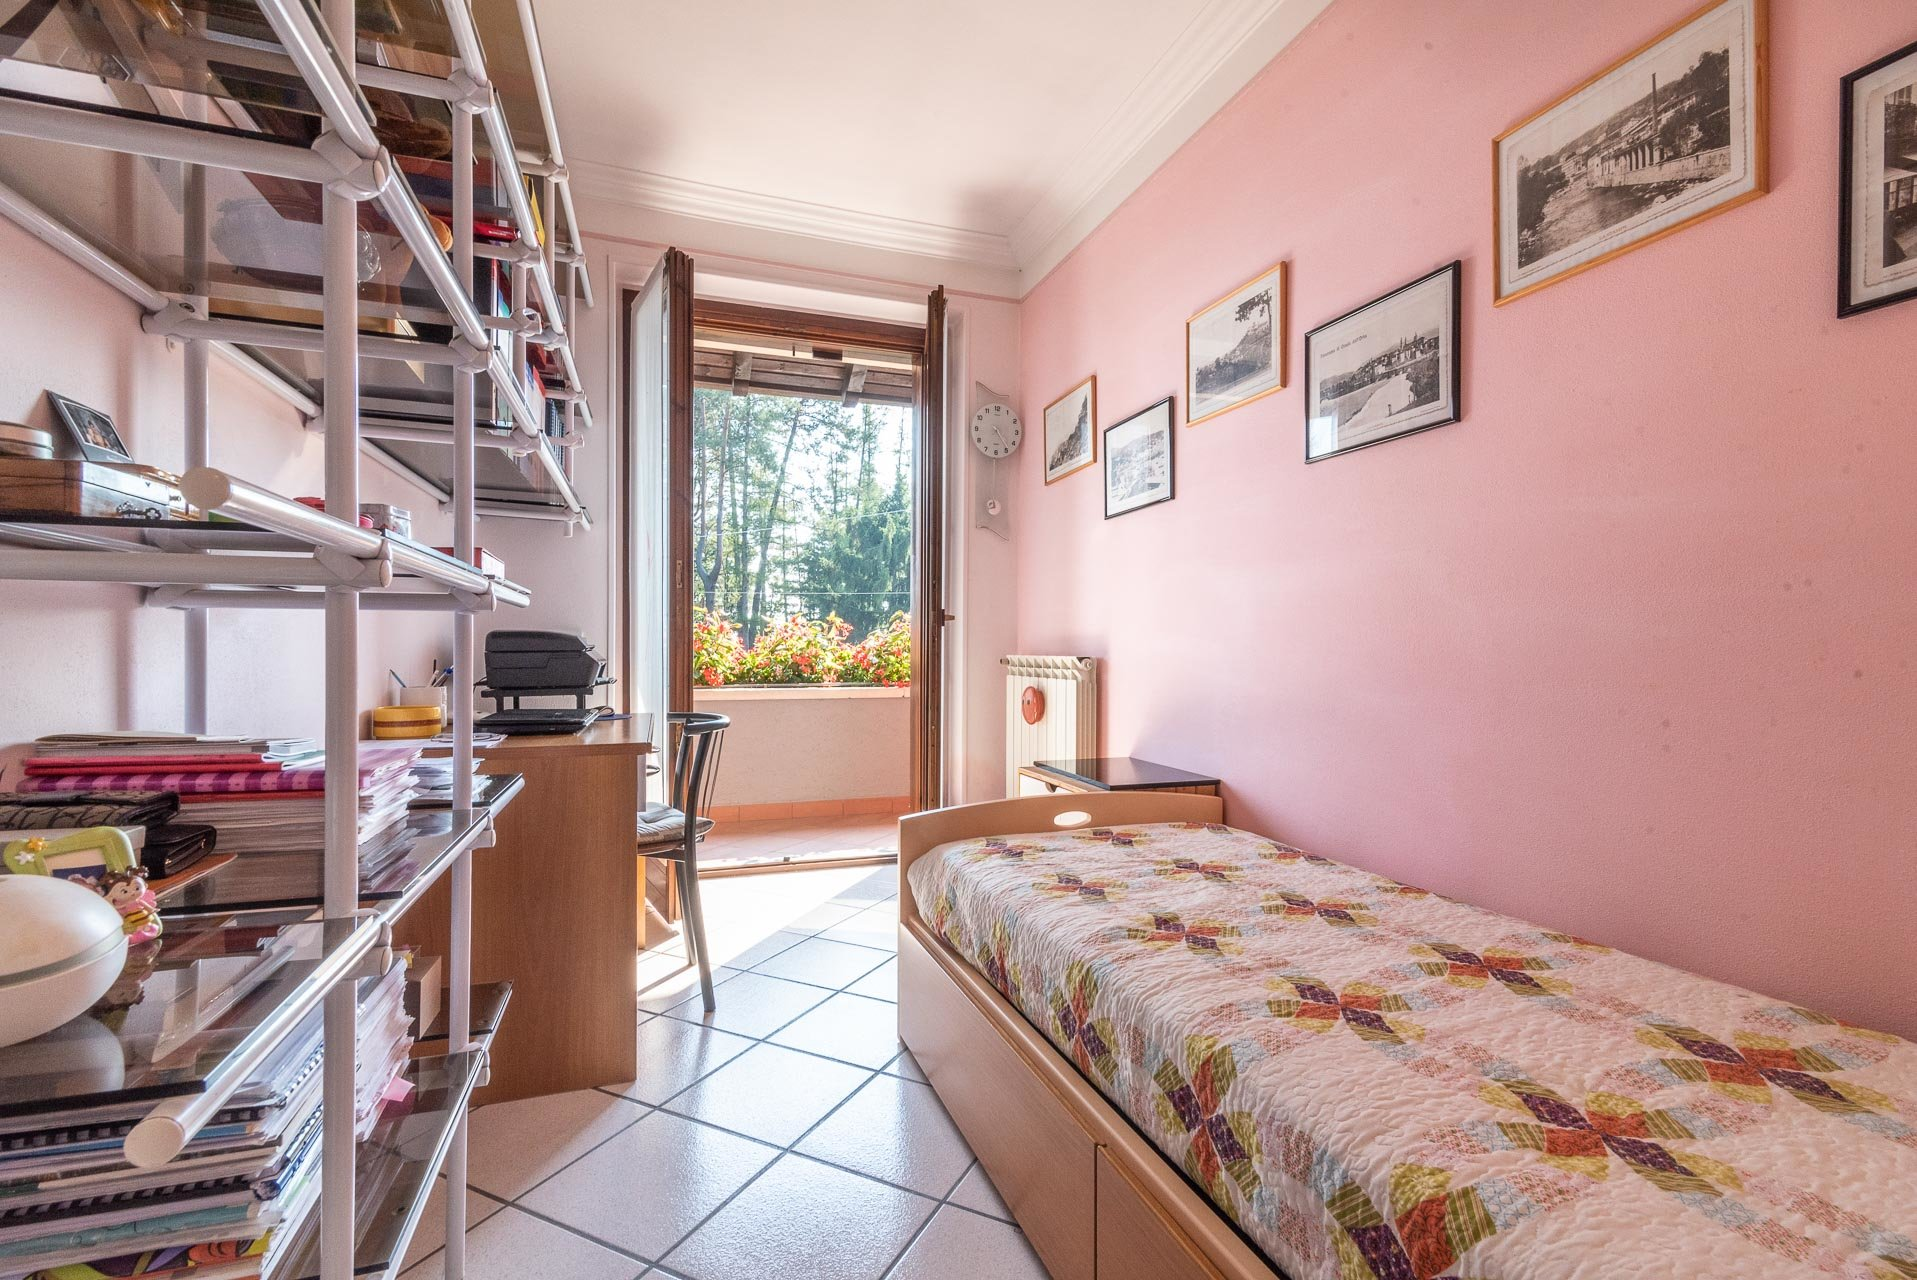 Villa for sale in Bee, with wonderful lake view - small bedroom